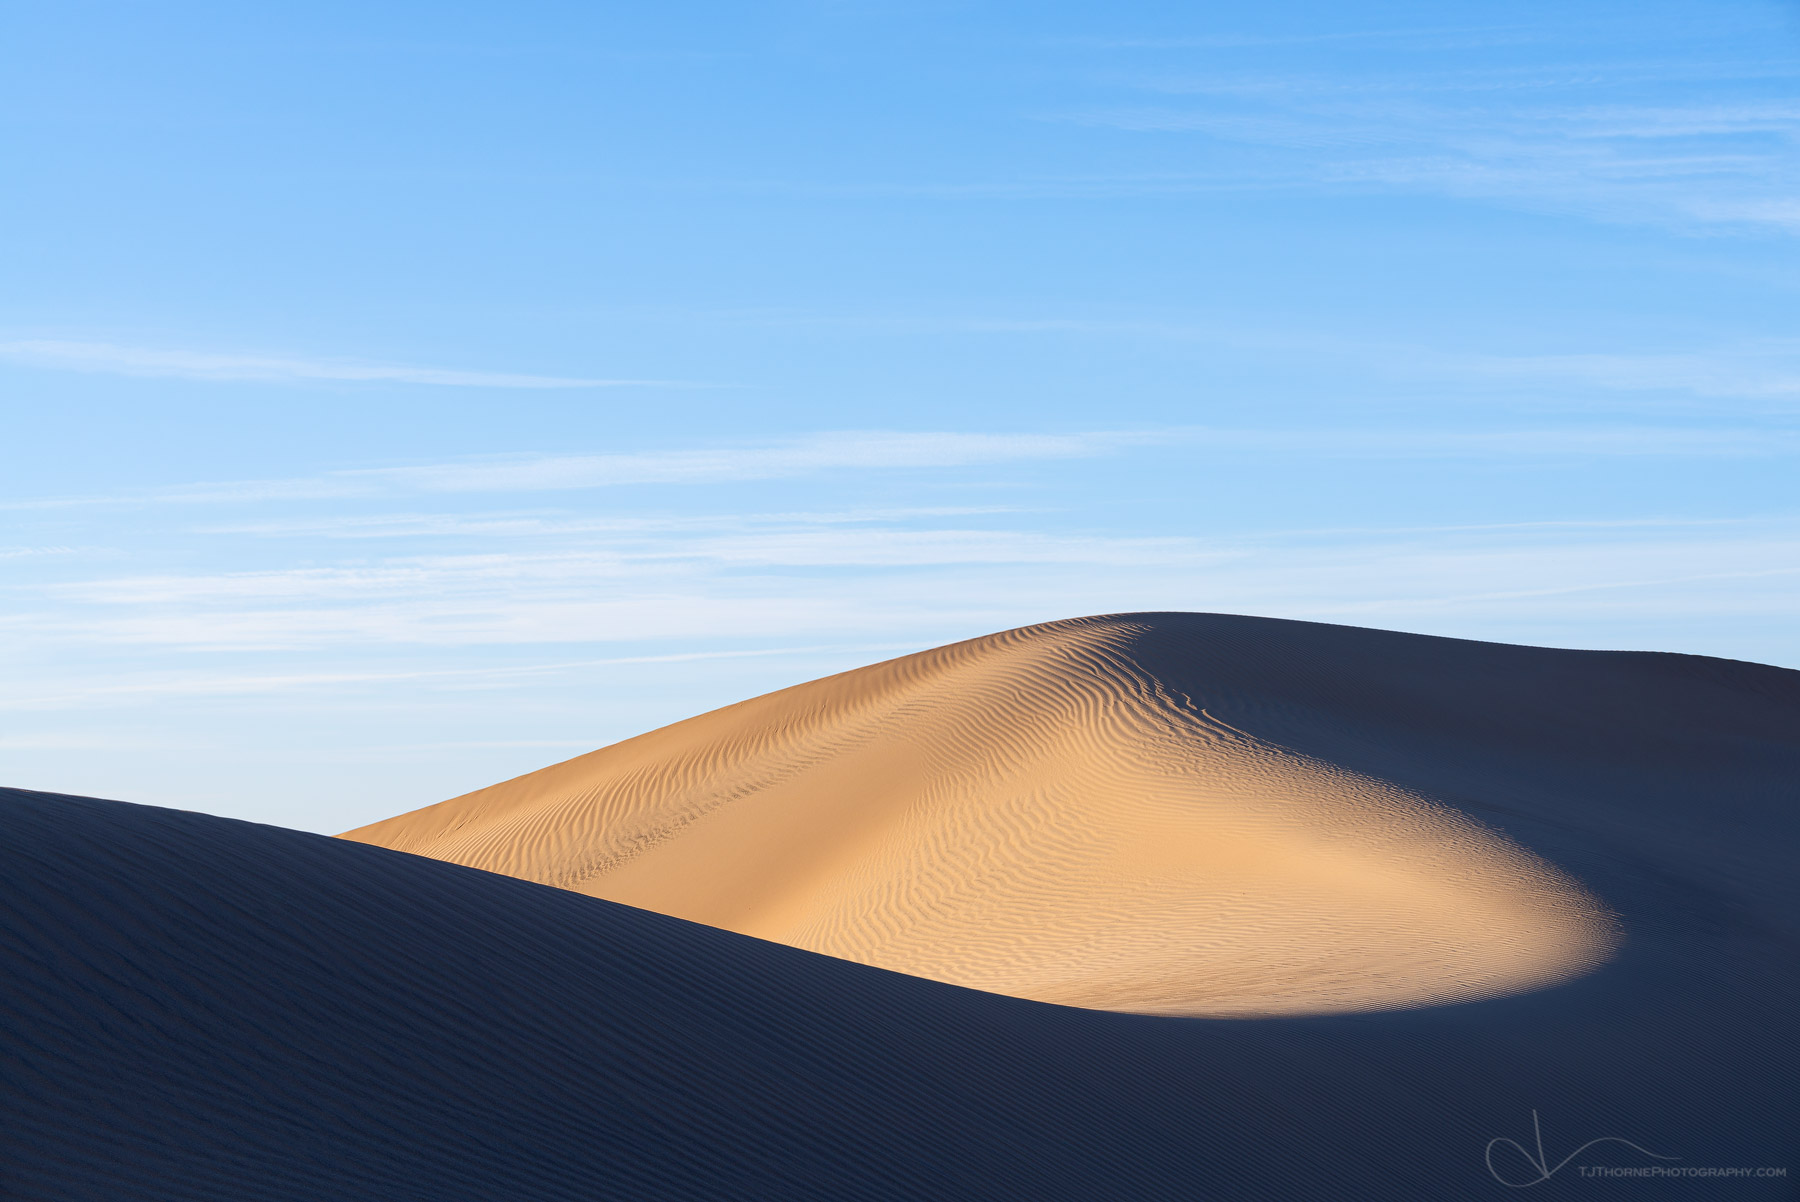 FINE ART LIMITED EDITION OF 100Early evening light on Mesquite Sand Dunes in Death Valley National Park, California.